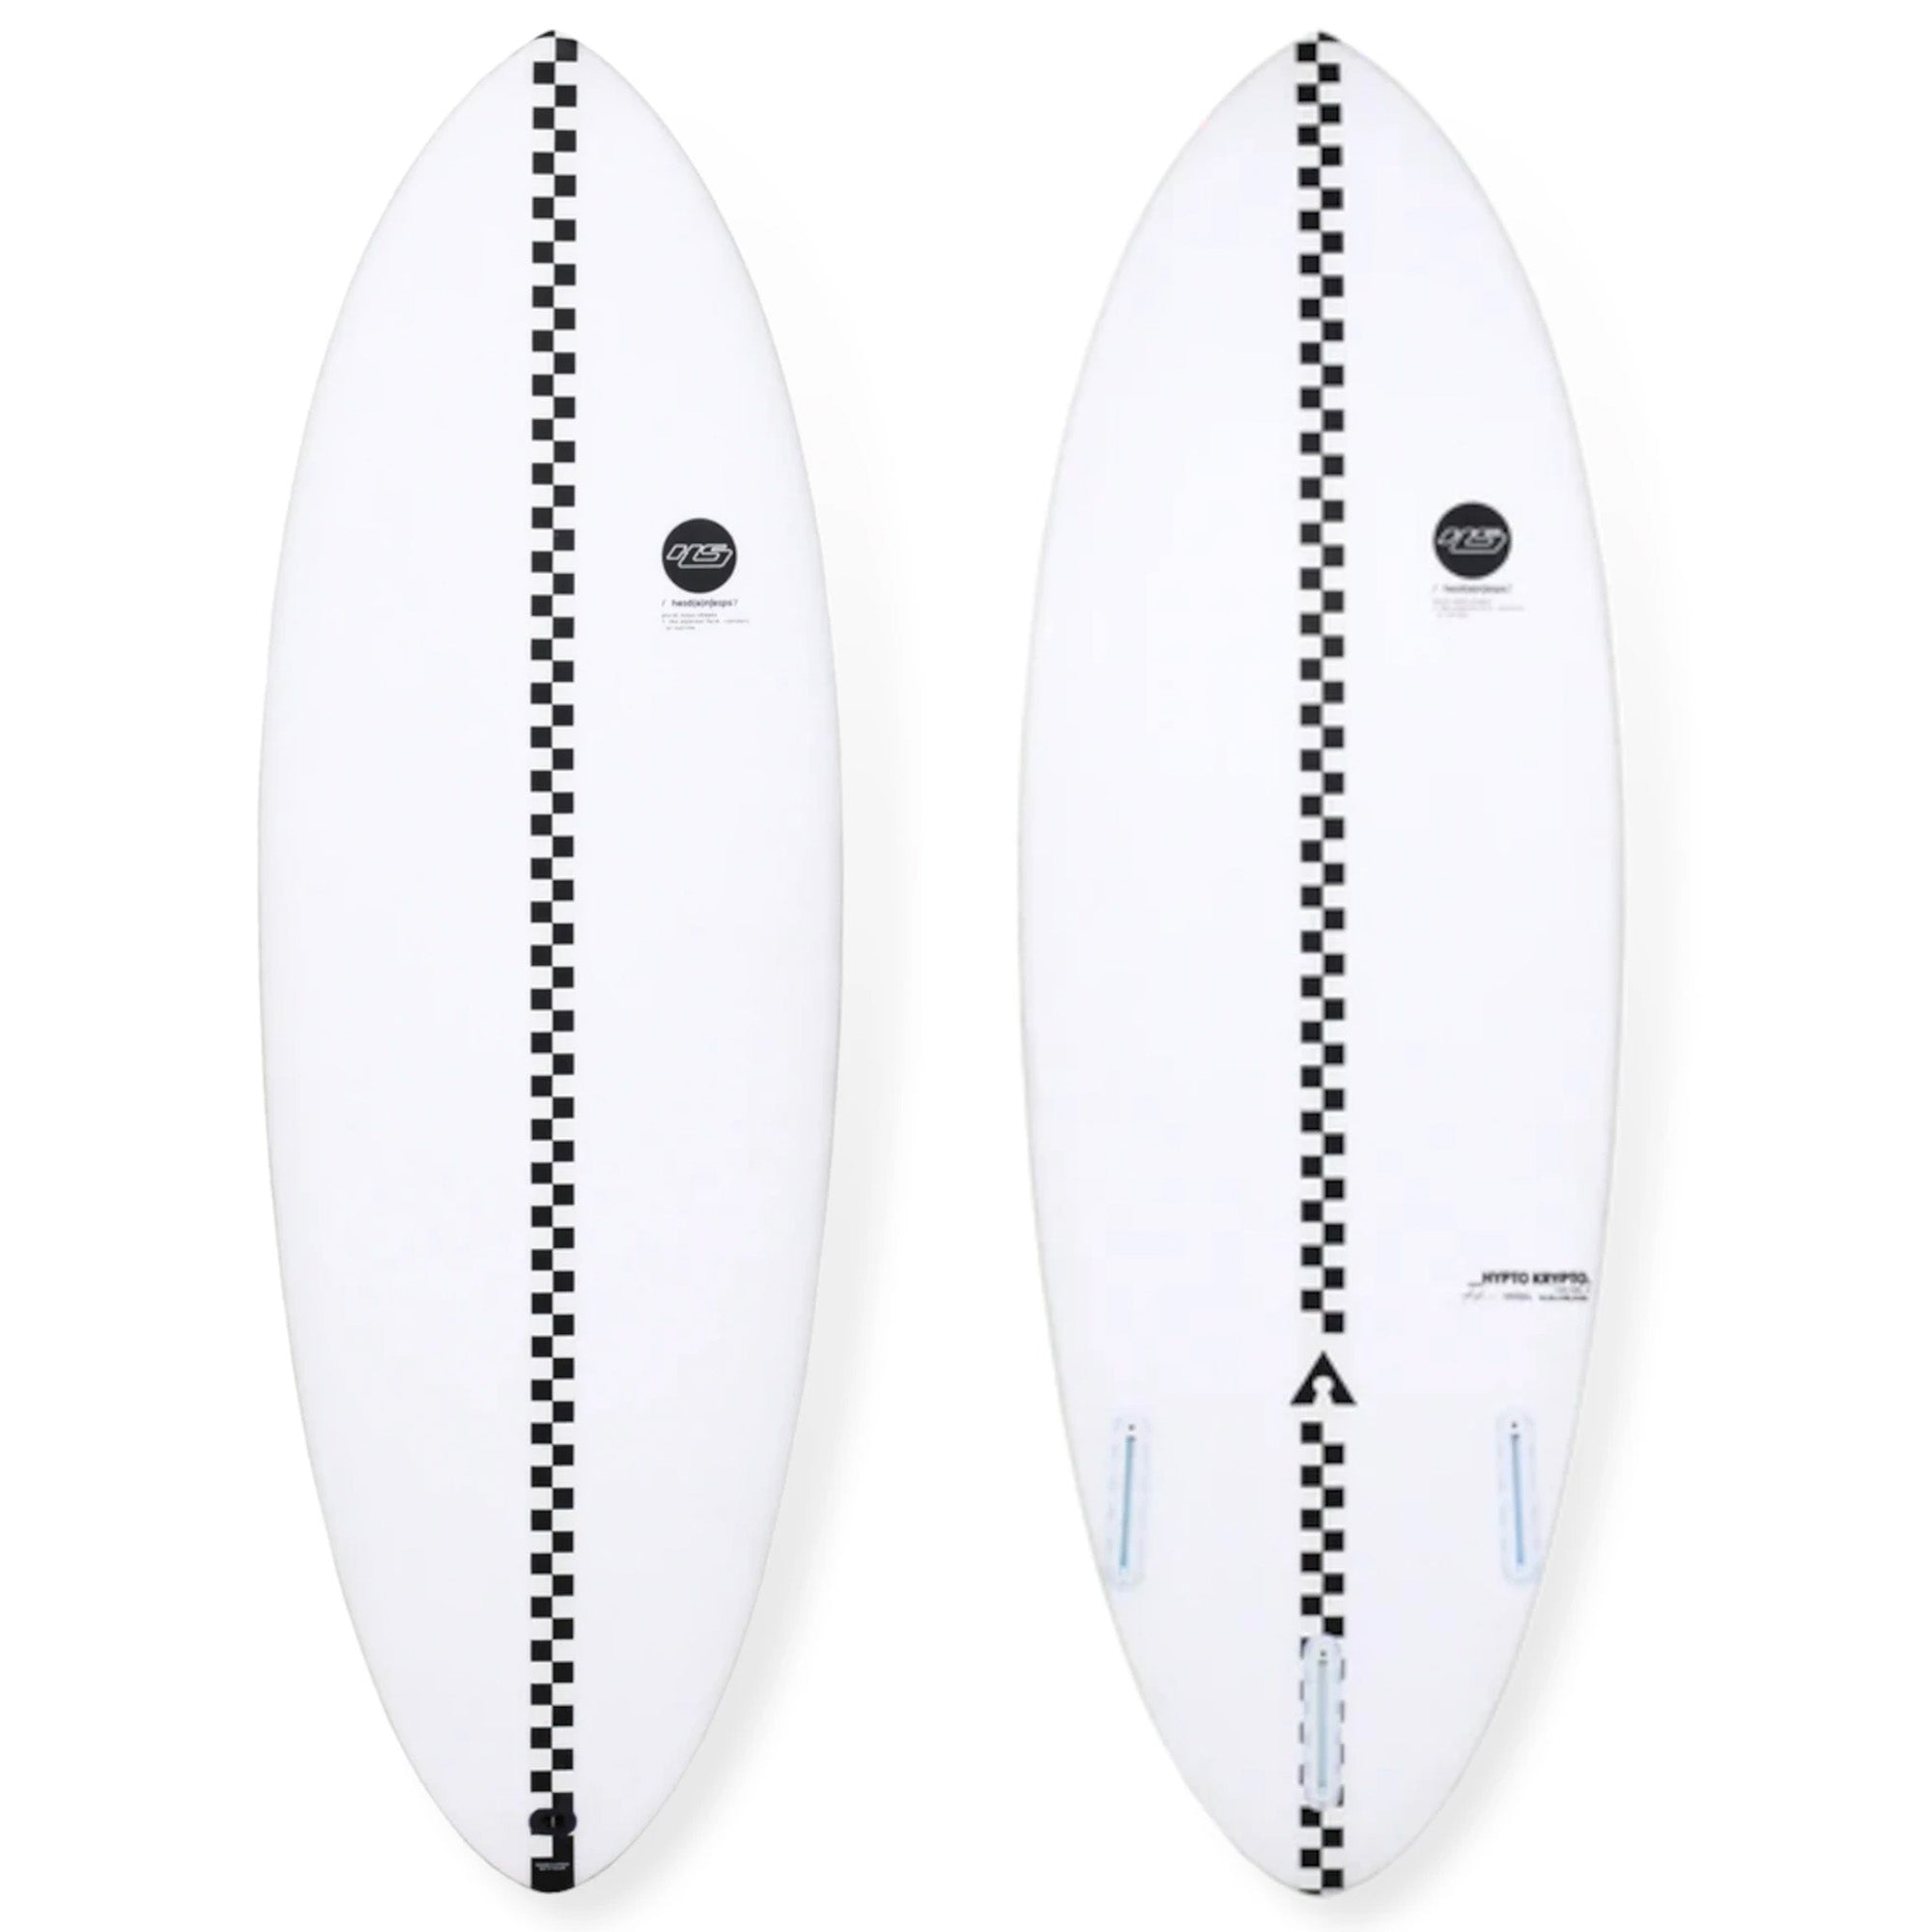 Hayden Shapes Hypto Krypto Grom Surfboard